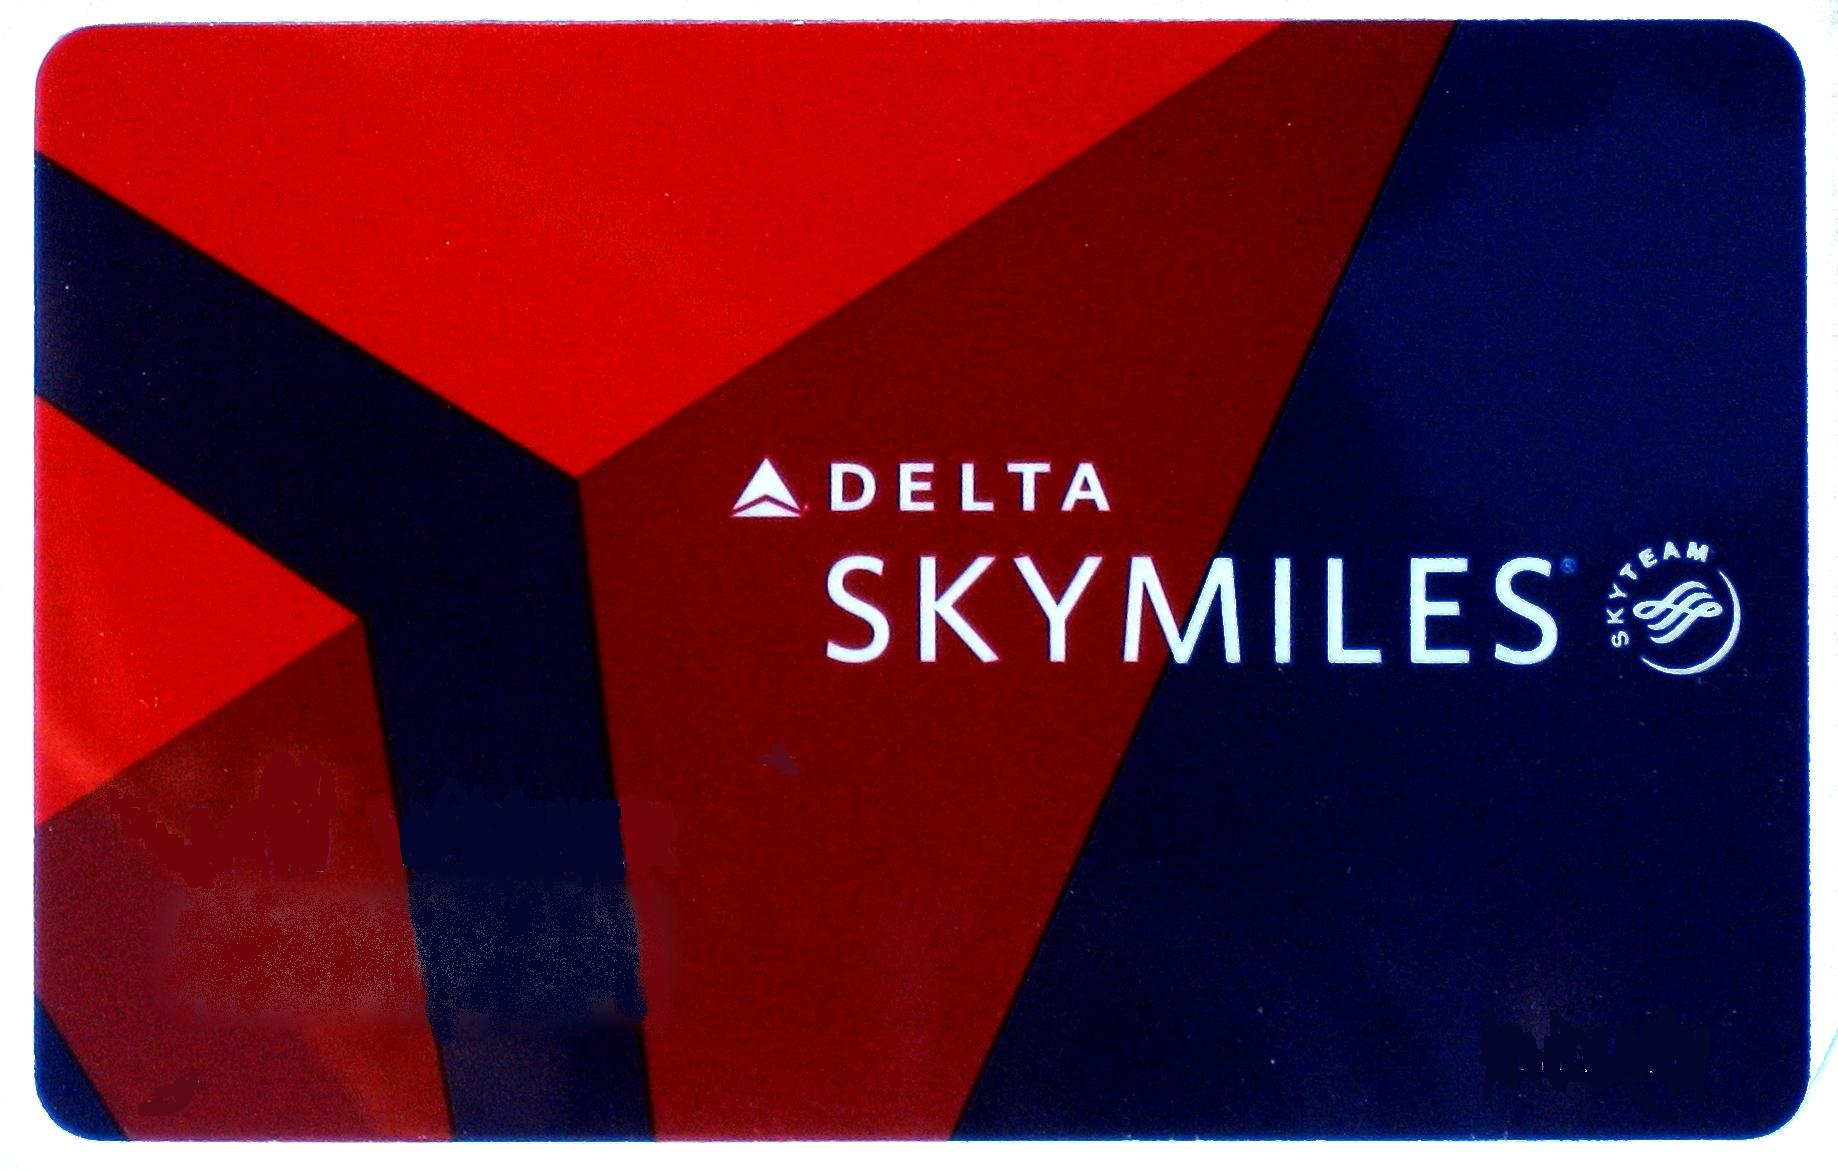 Discussion on this topic: How to Earn Skymiles Quickly, how-to-earn-skymiles-quickly/